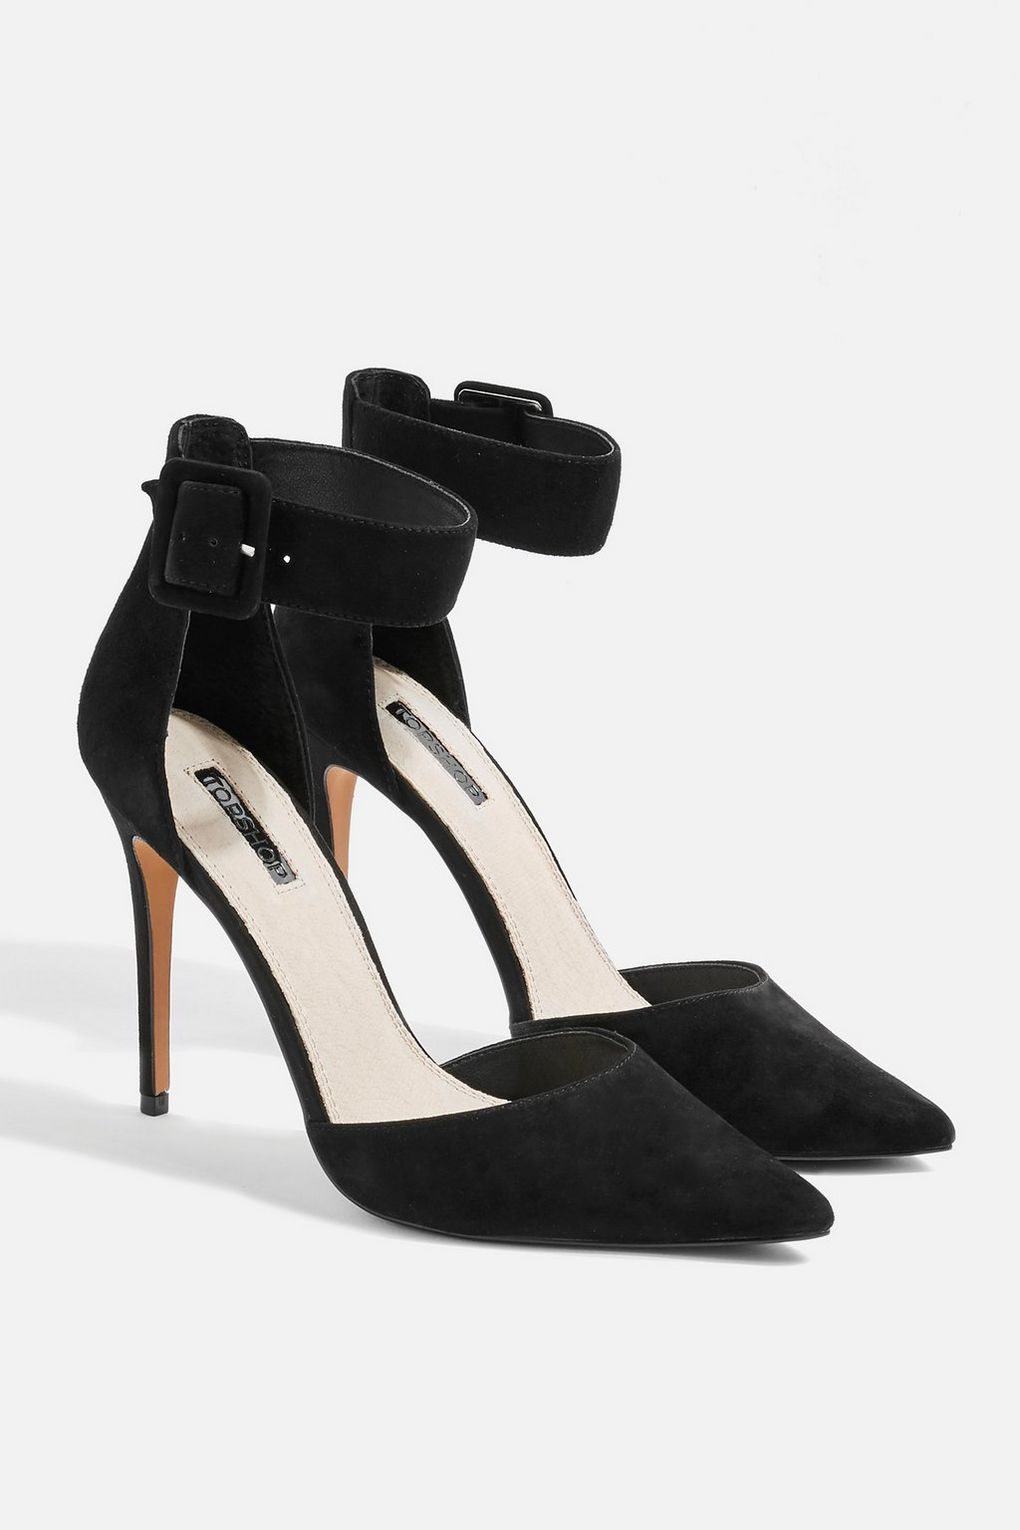 grace ankle strap shoes - shoes- topshop usa DSPBDFW